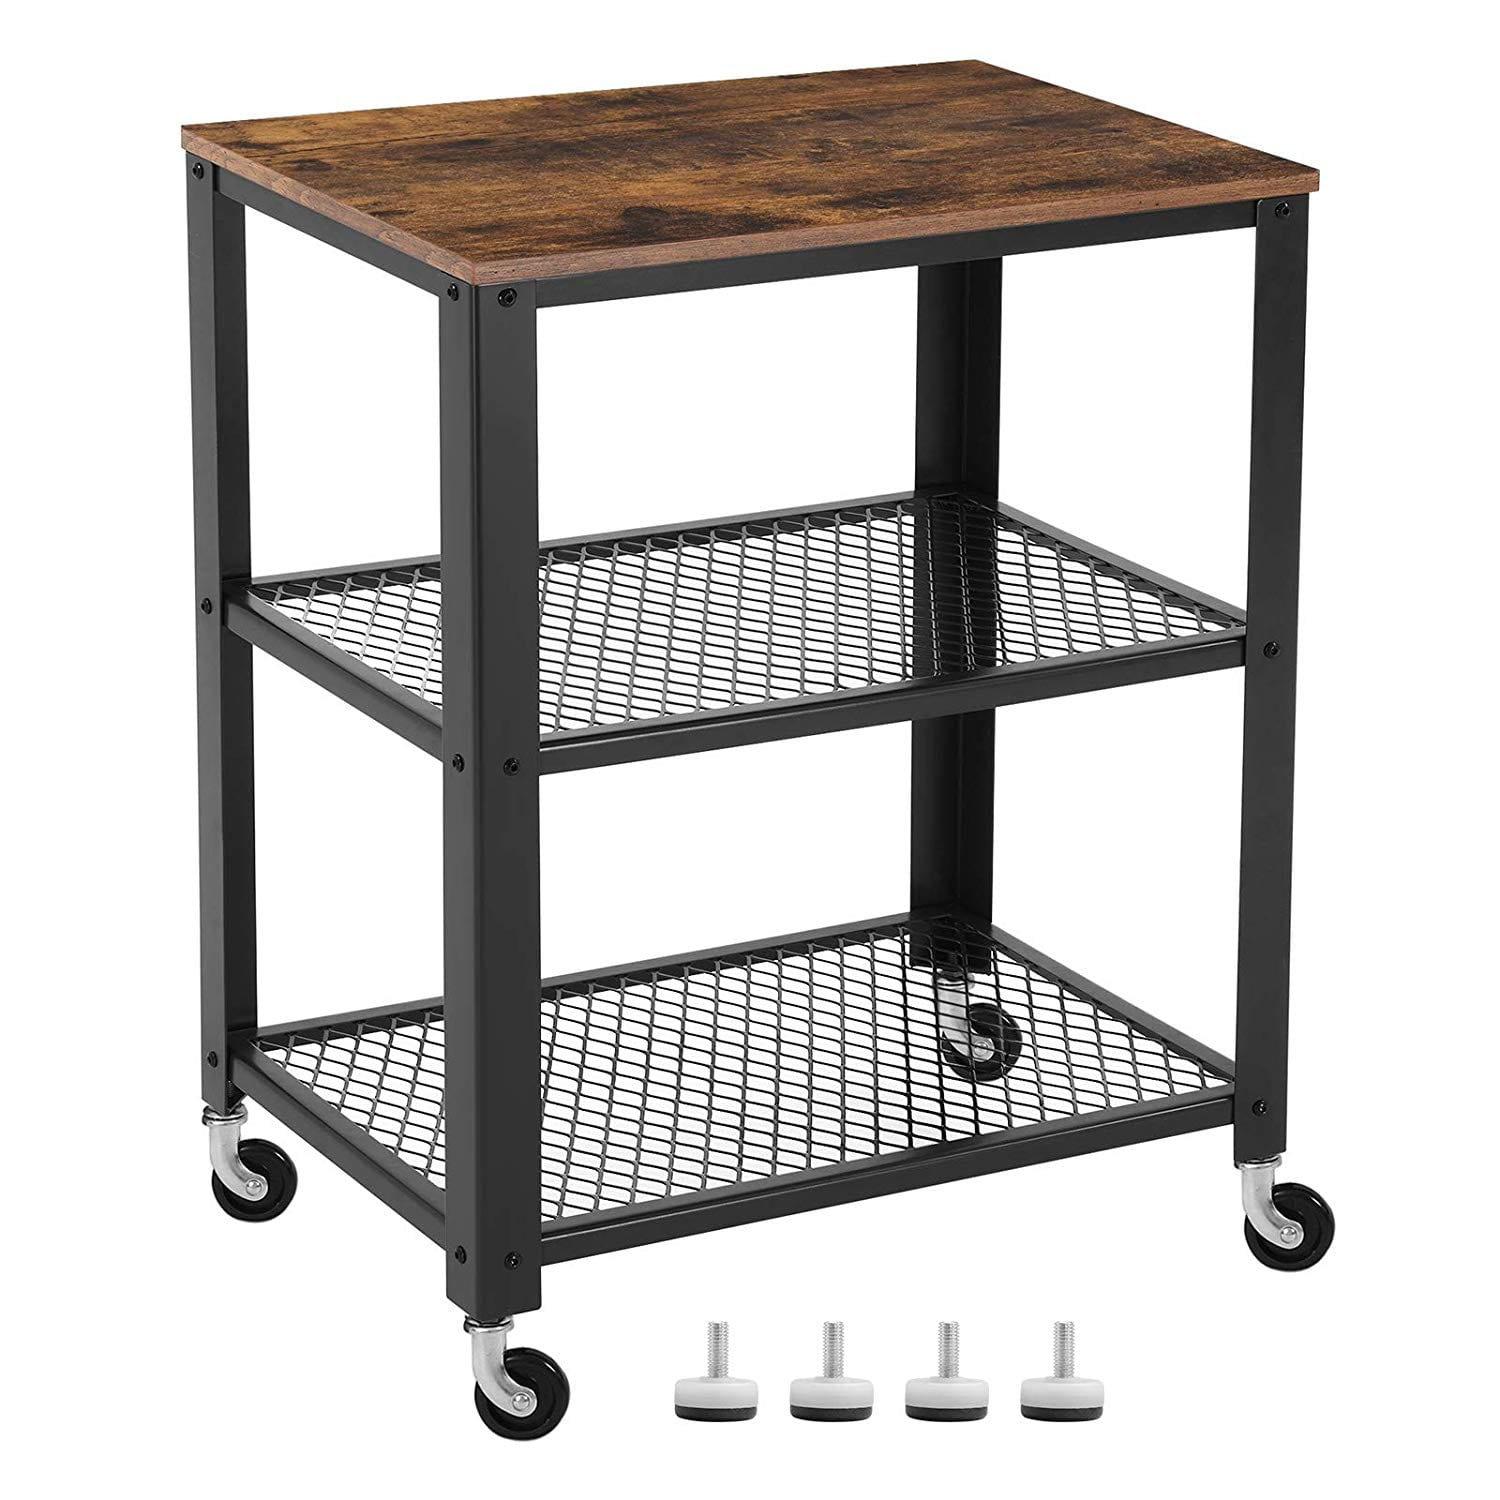 SONGMICS Vintage Serving Cart on Wheels, 3-Tier, ULRC78X